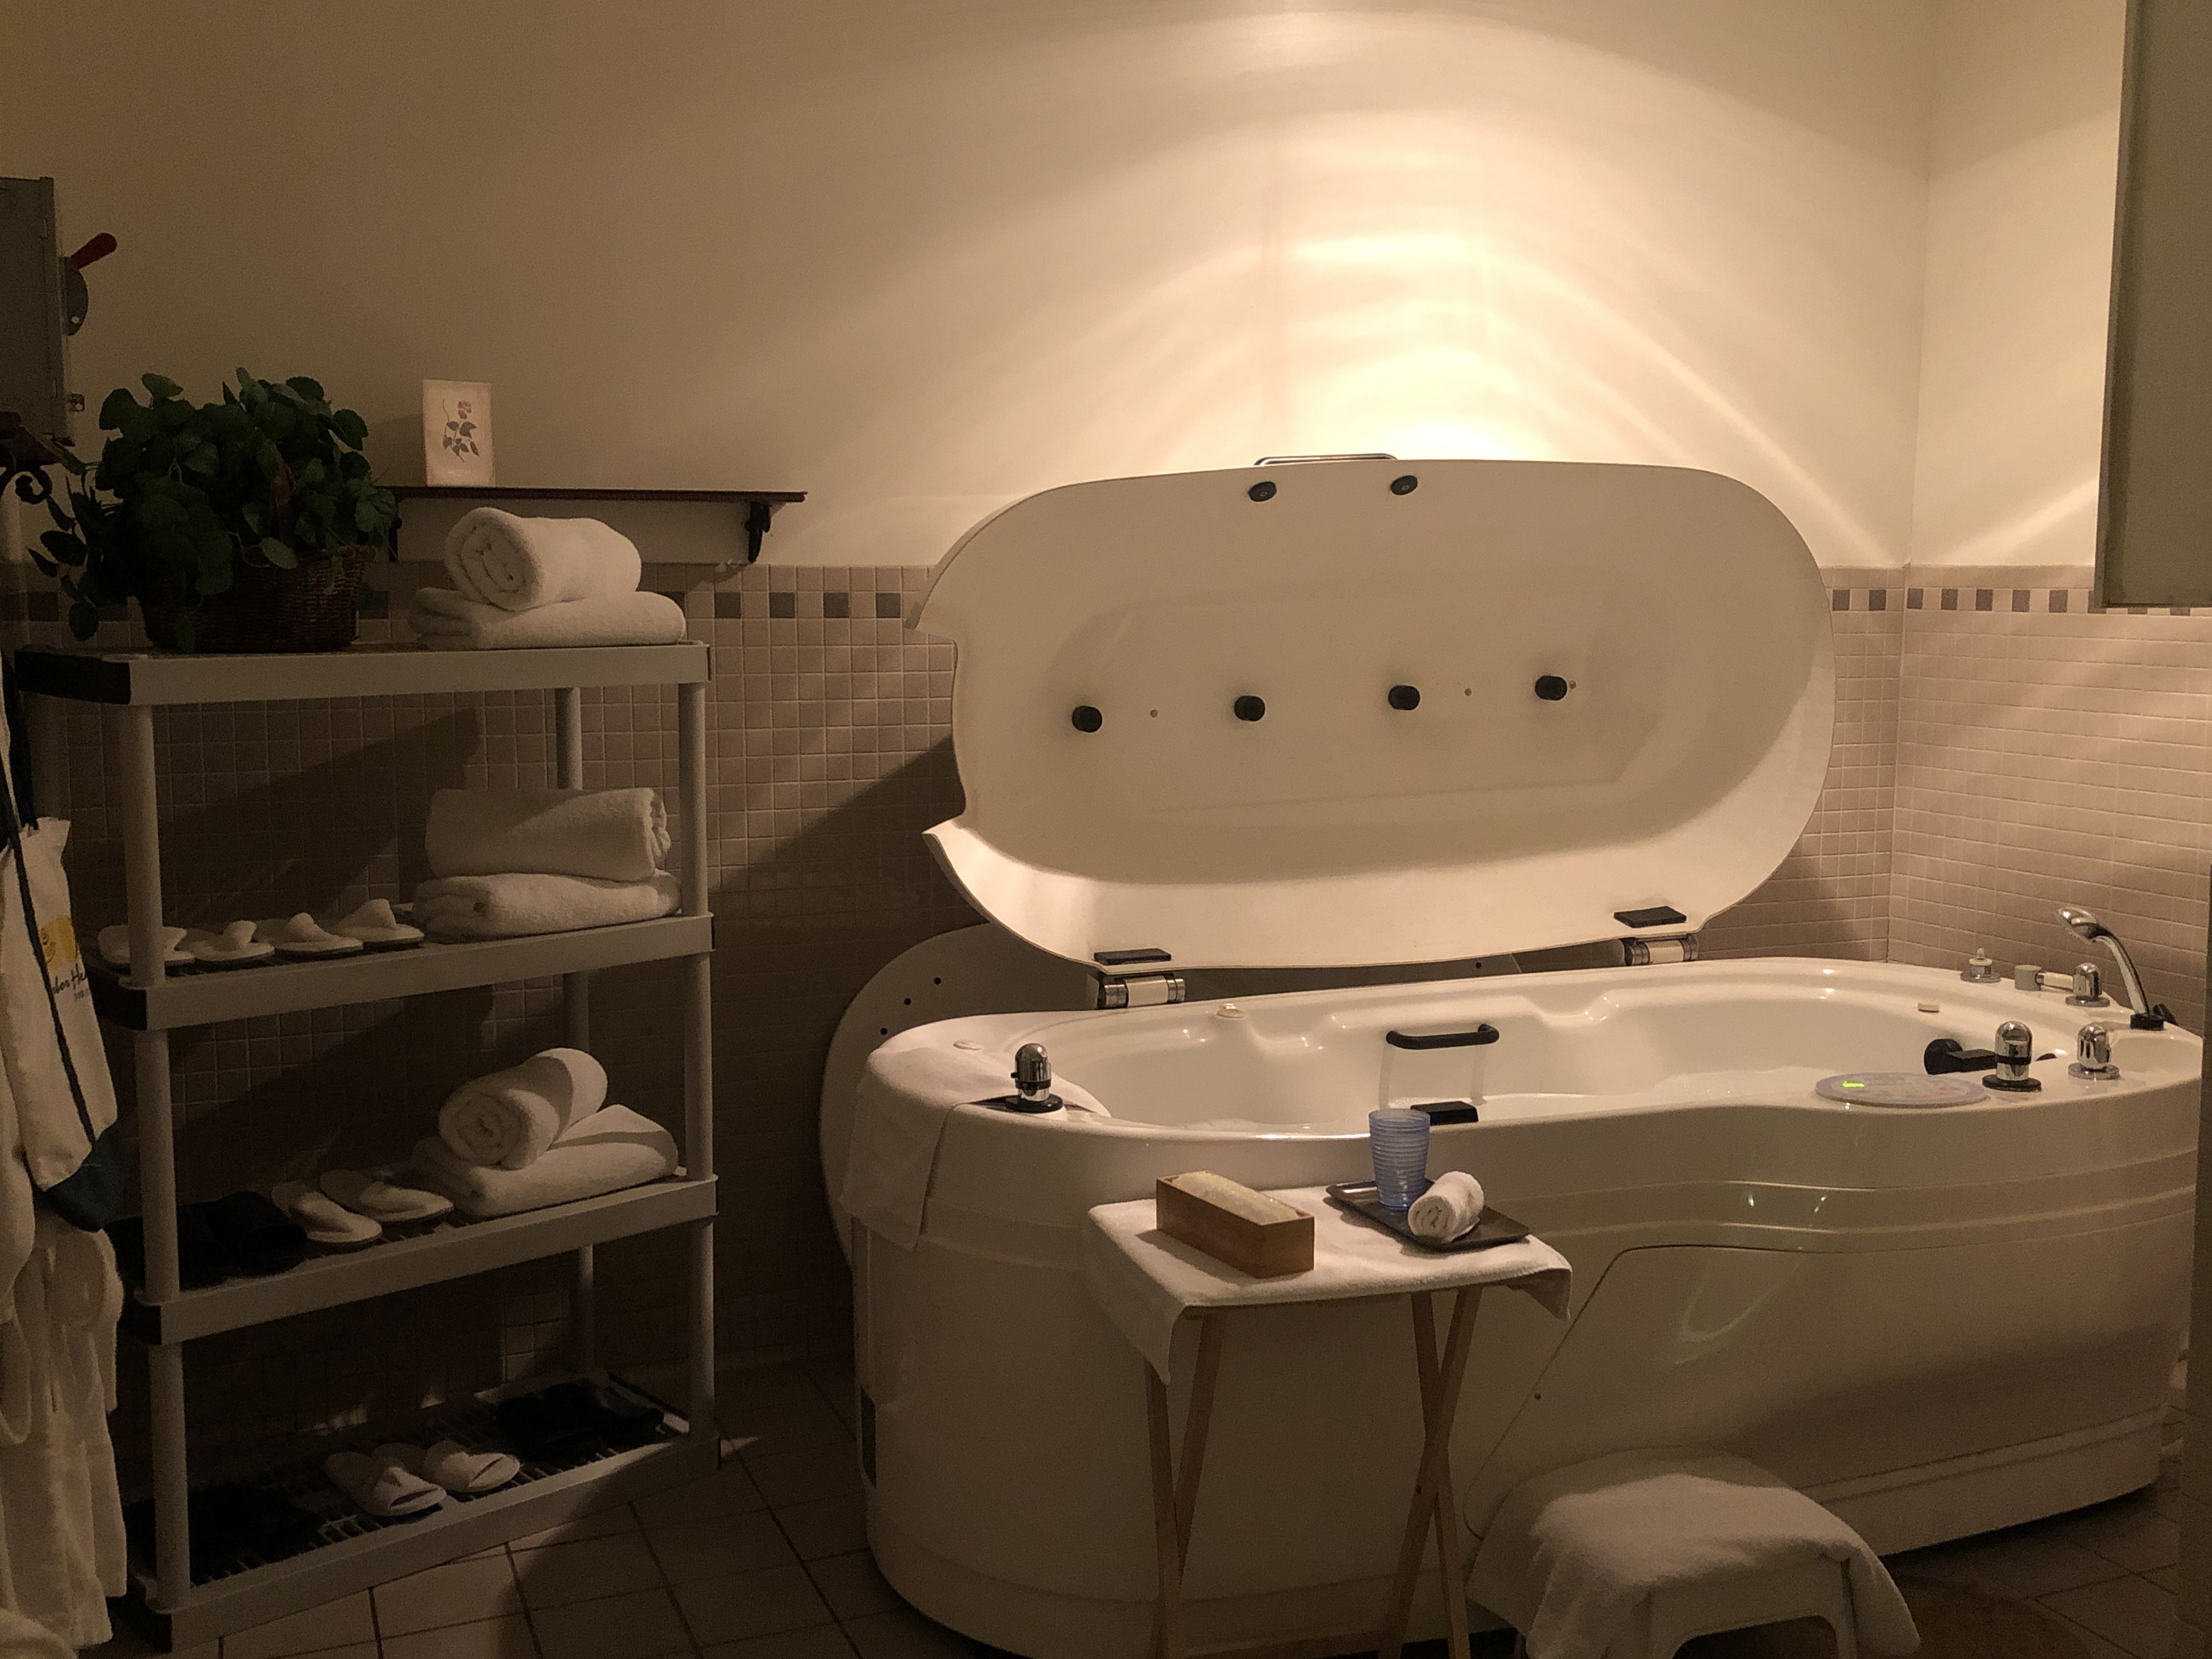 Relaxing Hydrotherapy Tub with Jets